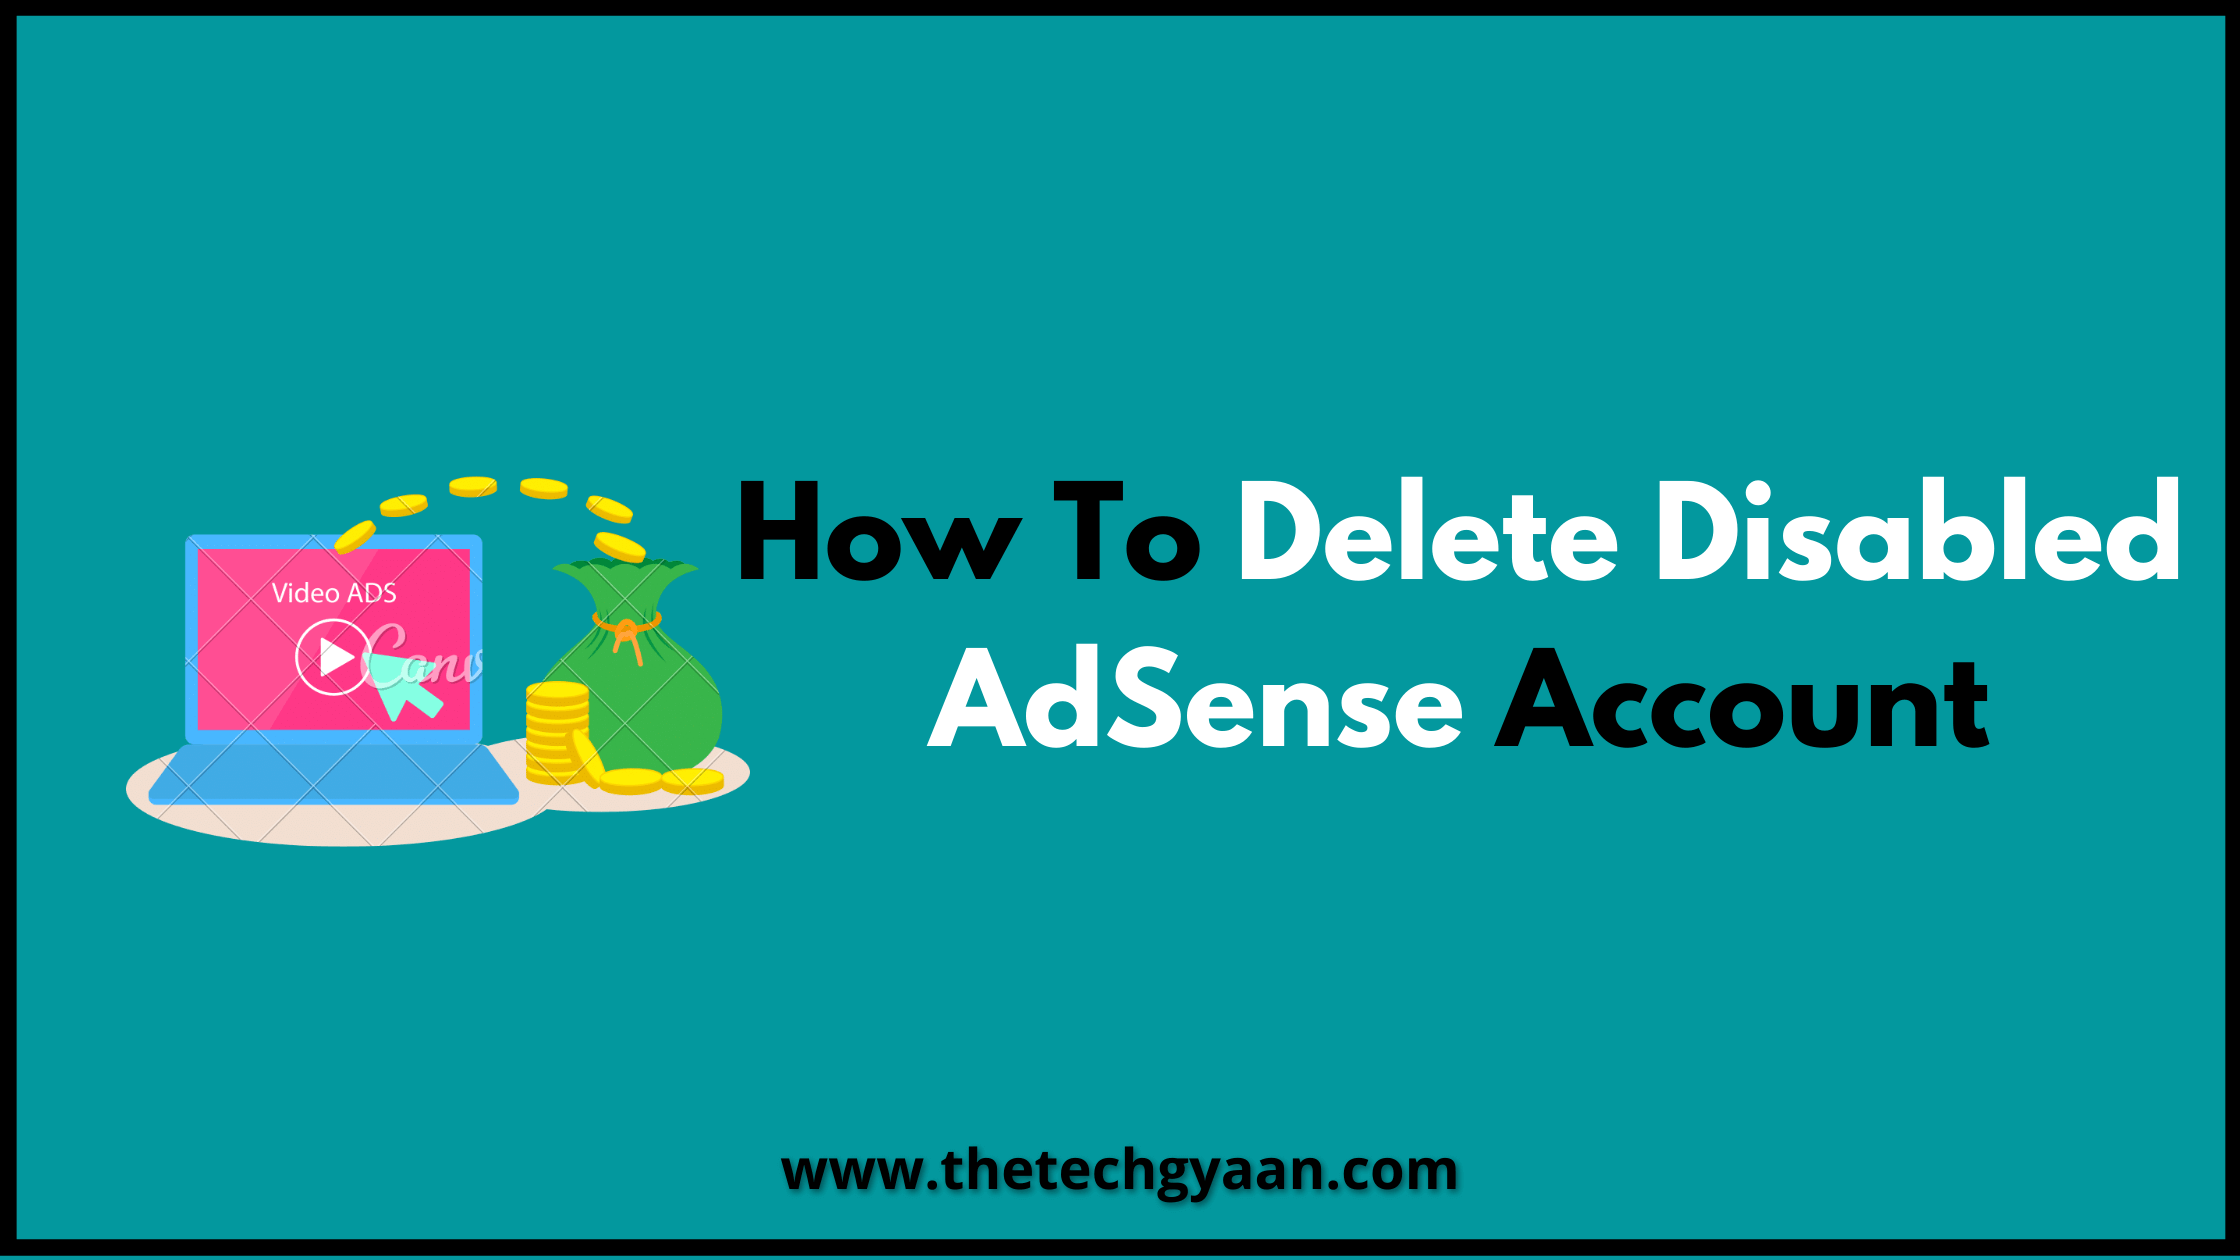 How To Delete Disabled AdSense Account